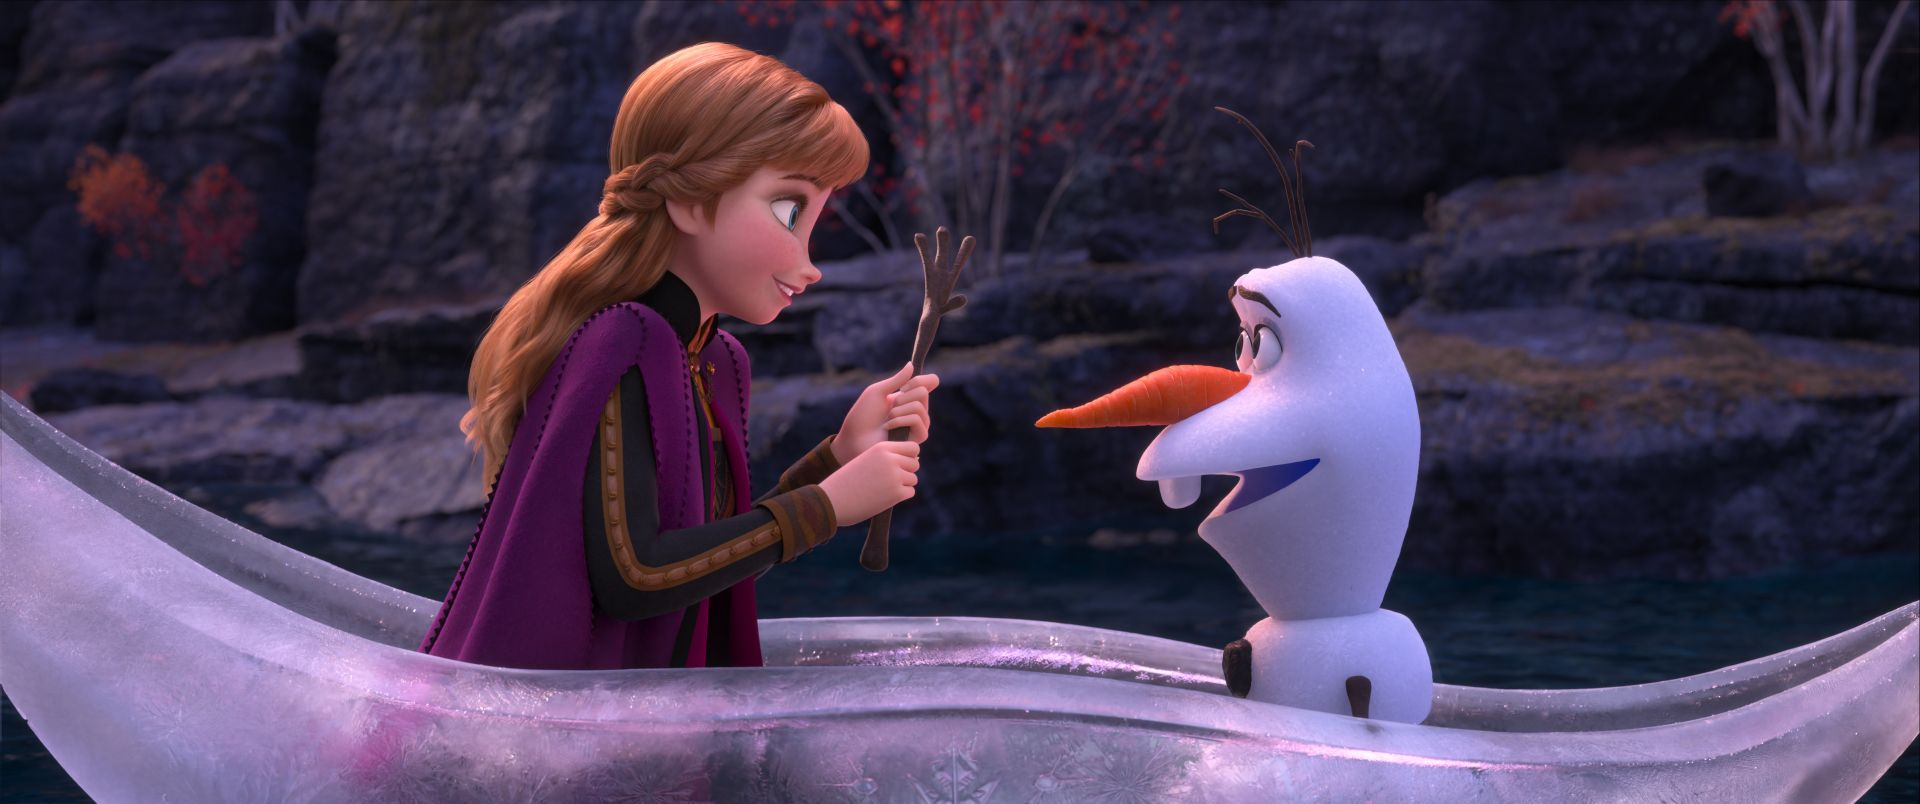 Anna and Olaf in ice boat in Frozen 2 and movie review